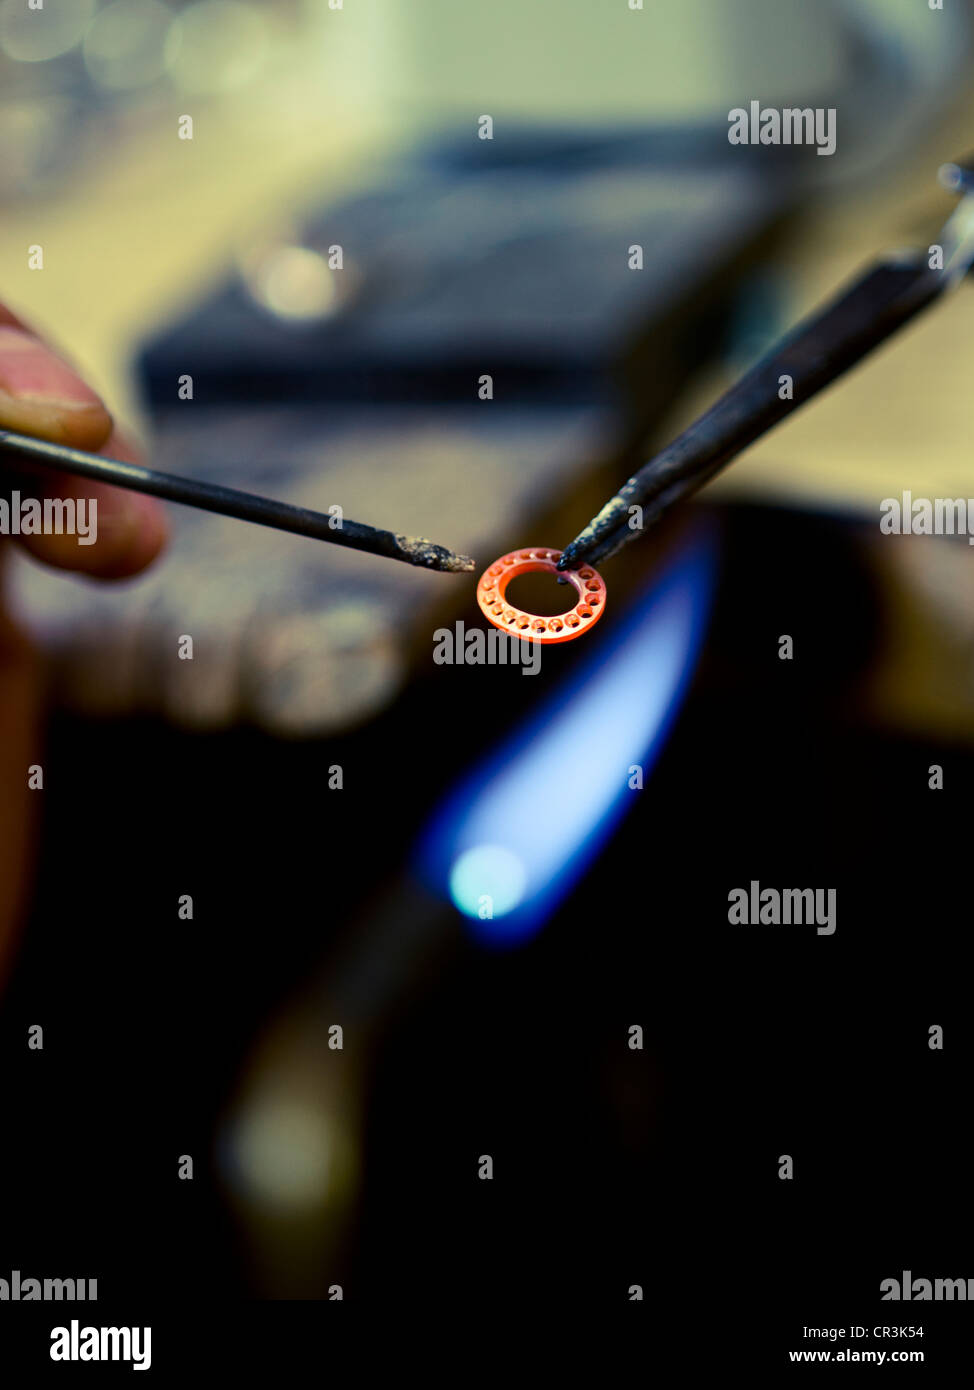 Jeweller making a ring - Stock Image